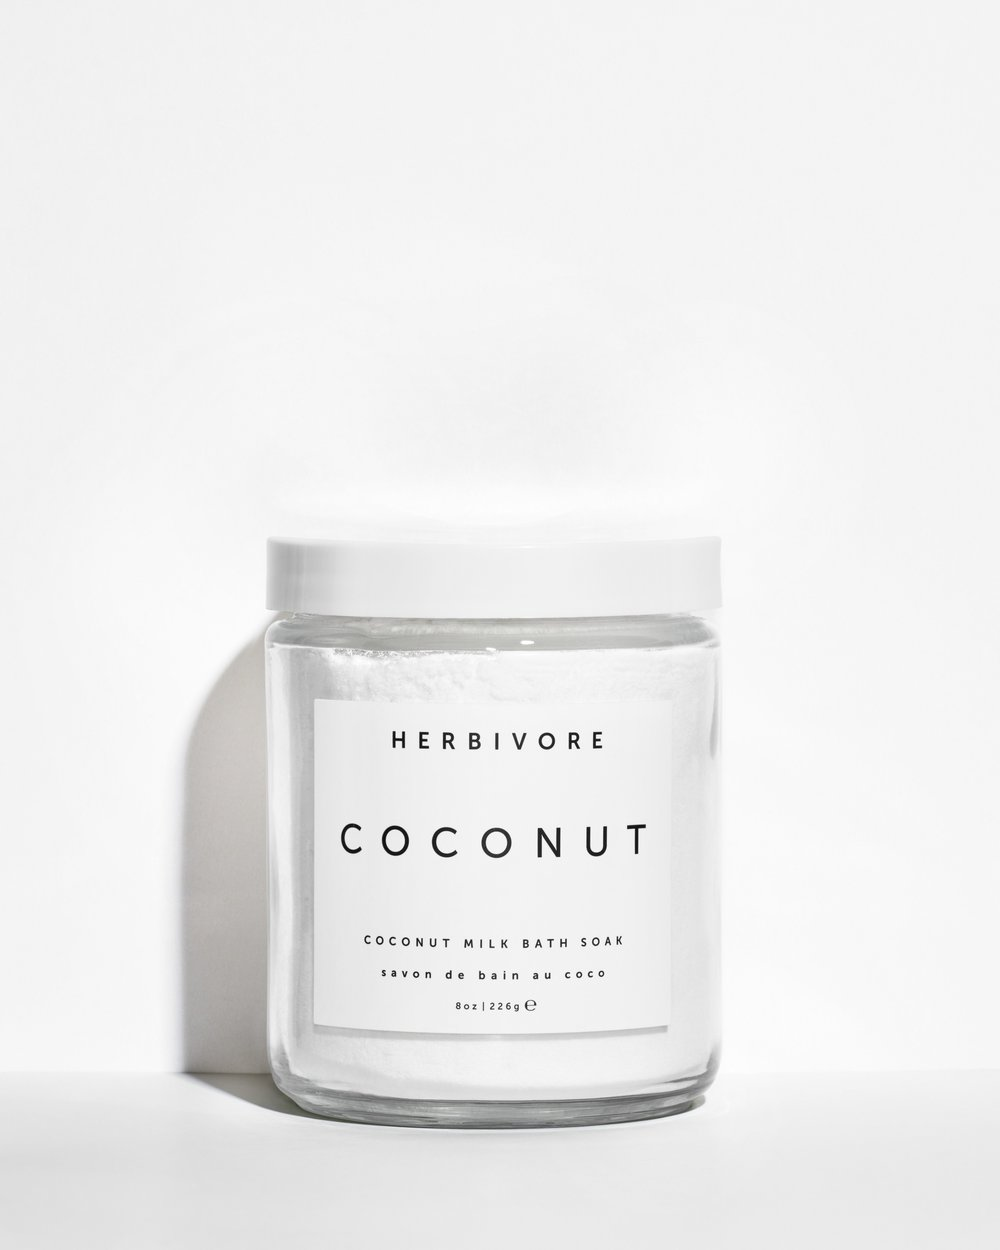 1320-22C_HBV_HIR_COCONUT_BATH_8OZ.jpg